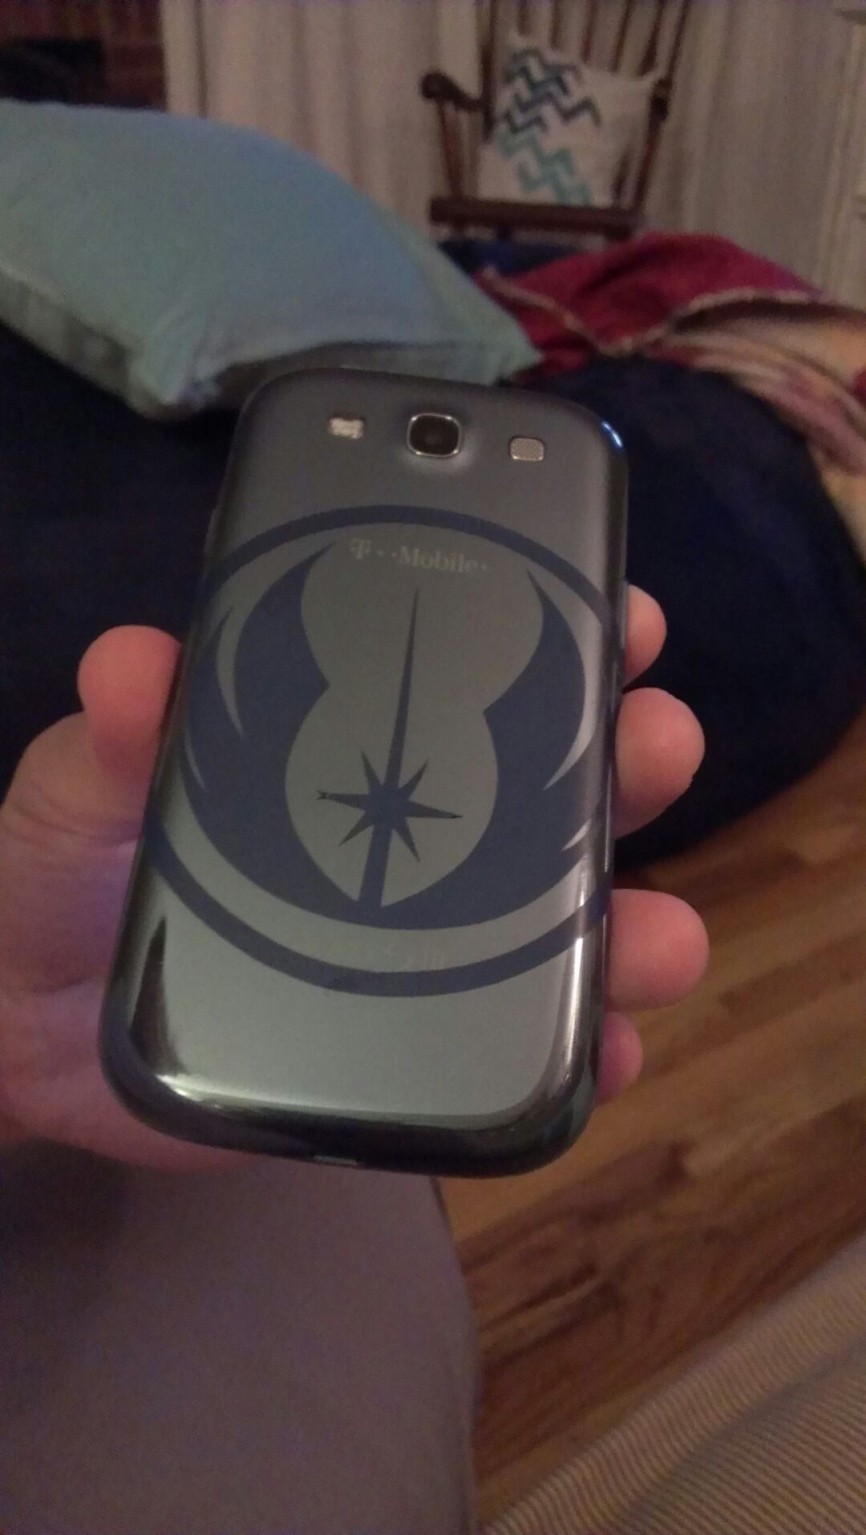 Wife Makes Husband Cool SWTOR Phone Cover